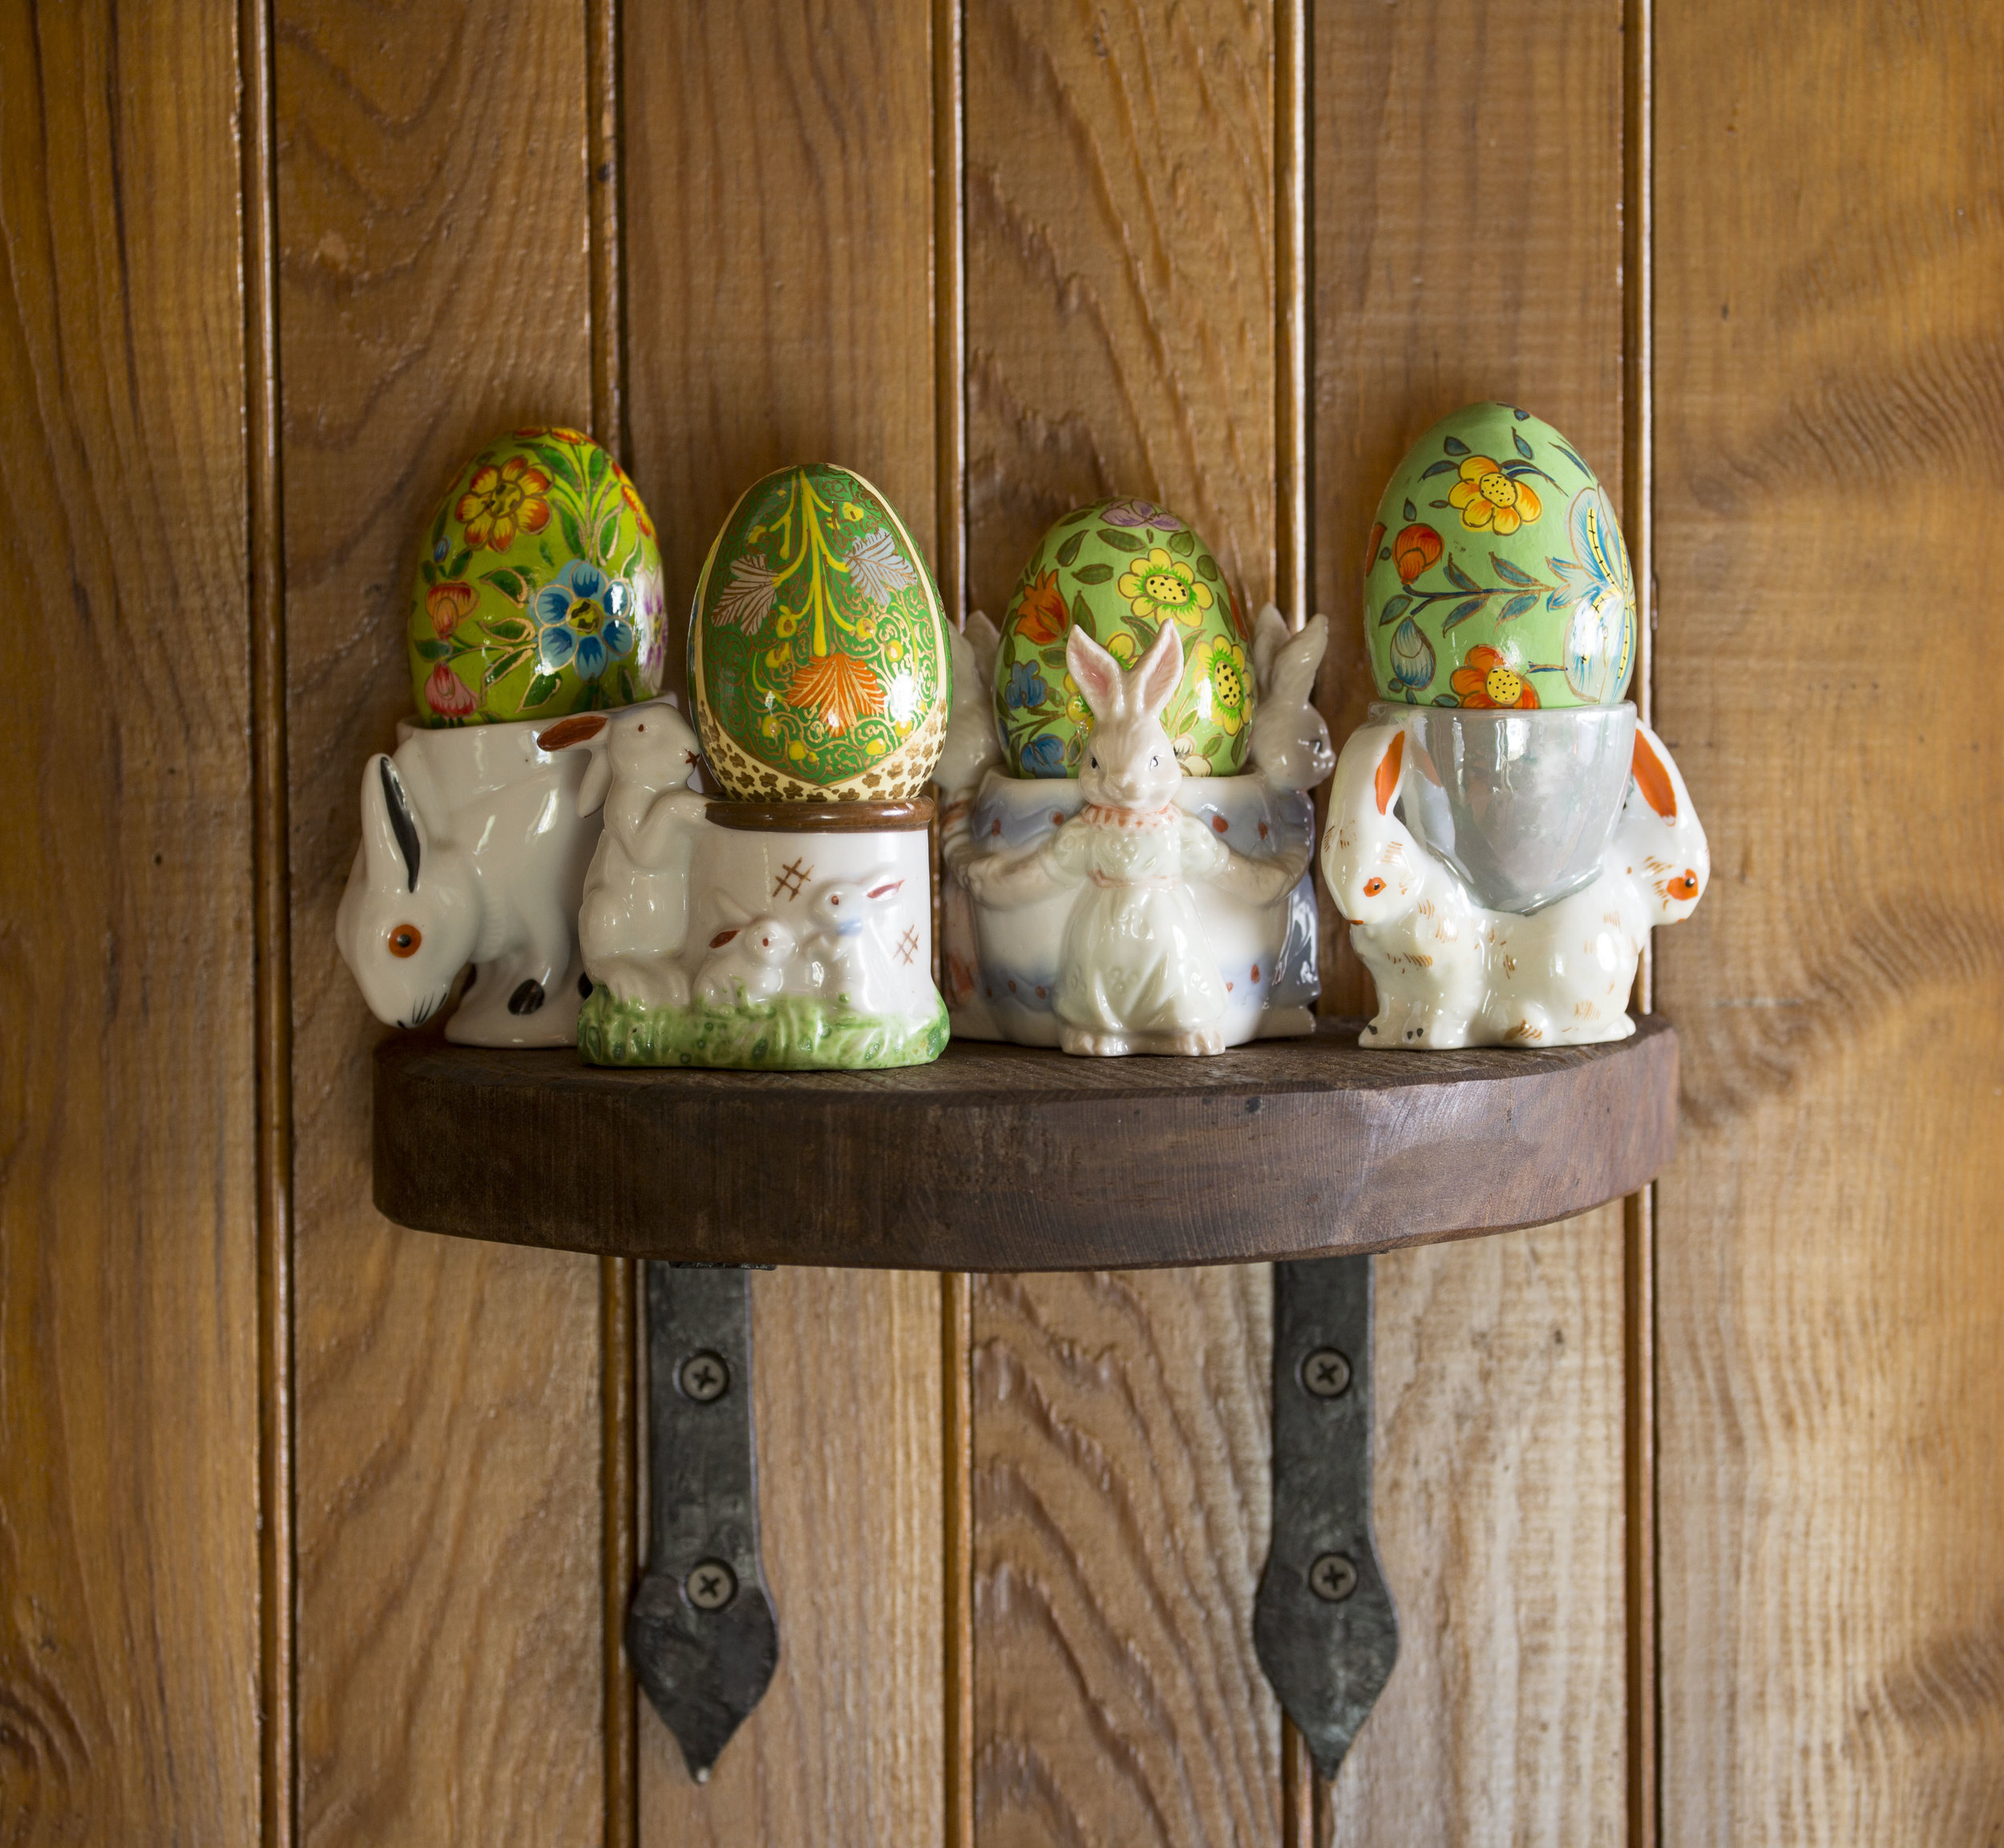 These bunny-themed egg cups and hand-painted Easter eggs were collected for a client whose sweet grandmother went by the nickname Bunny. They are lovingly displayed in a cottage that pays homage to her.   Photo credit John Bessler.